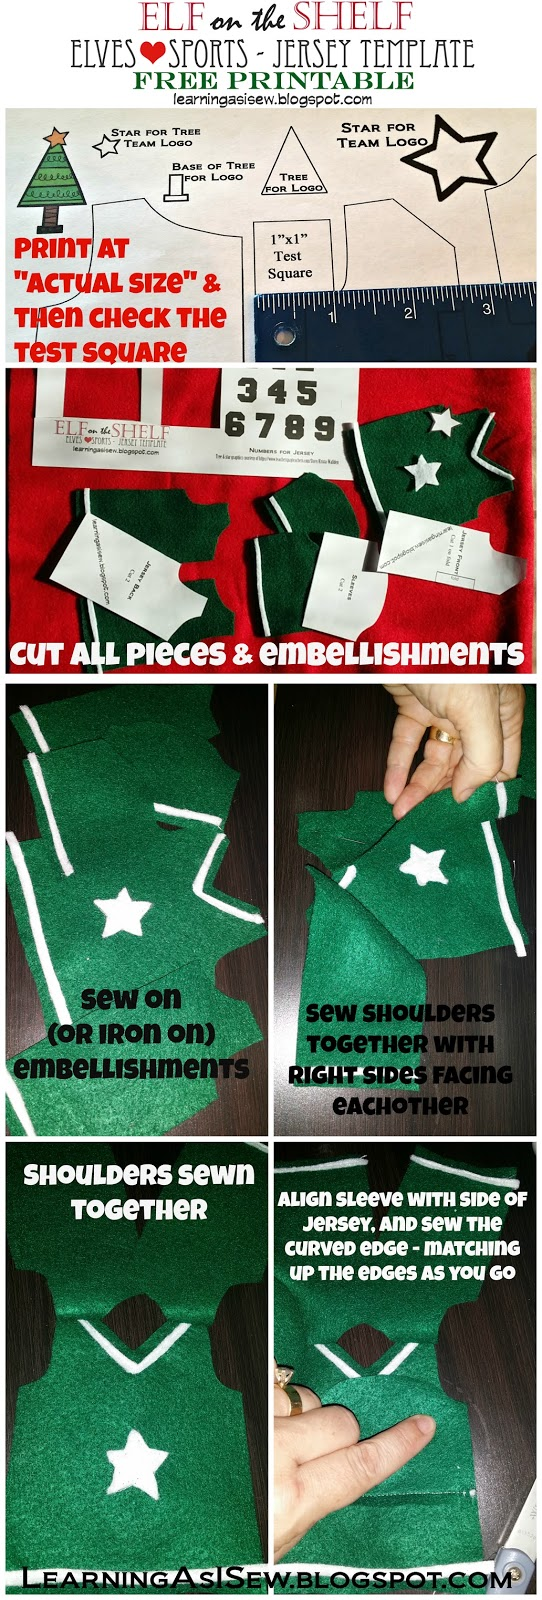 Elf on the Shelf: Free Sports Jersey Printable and Instructions